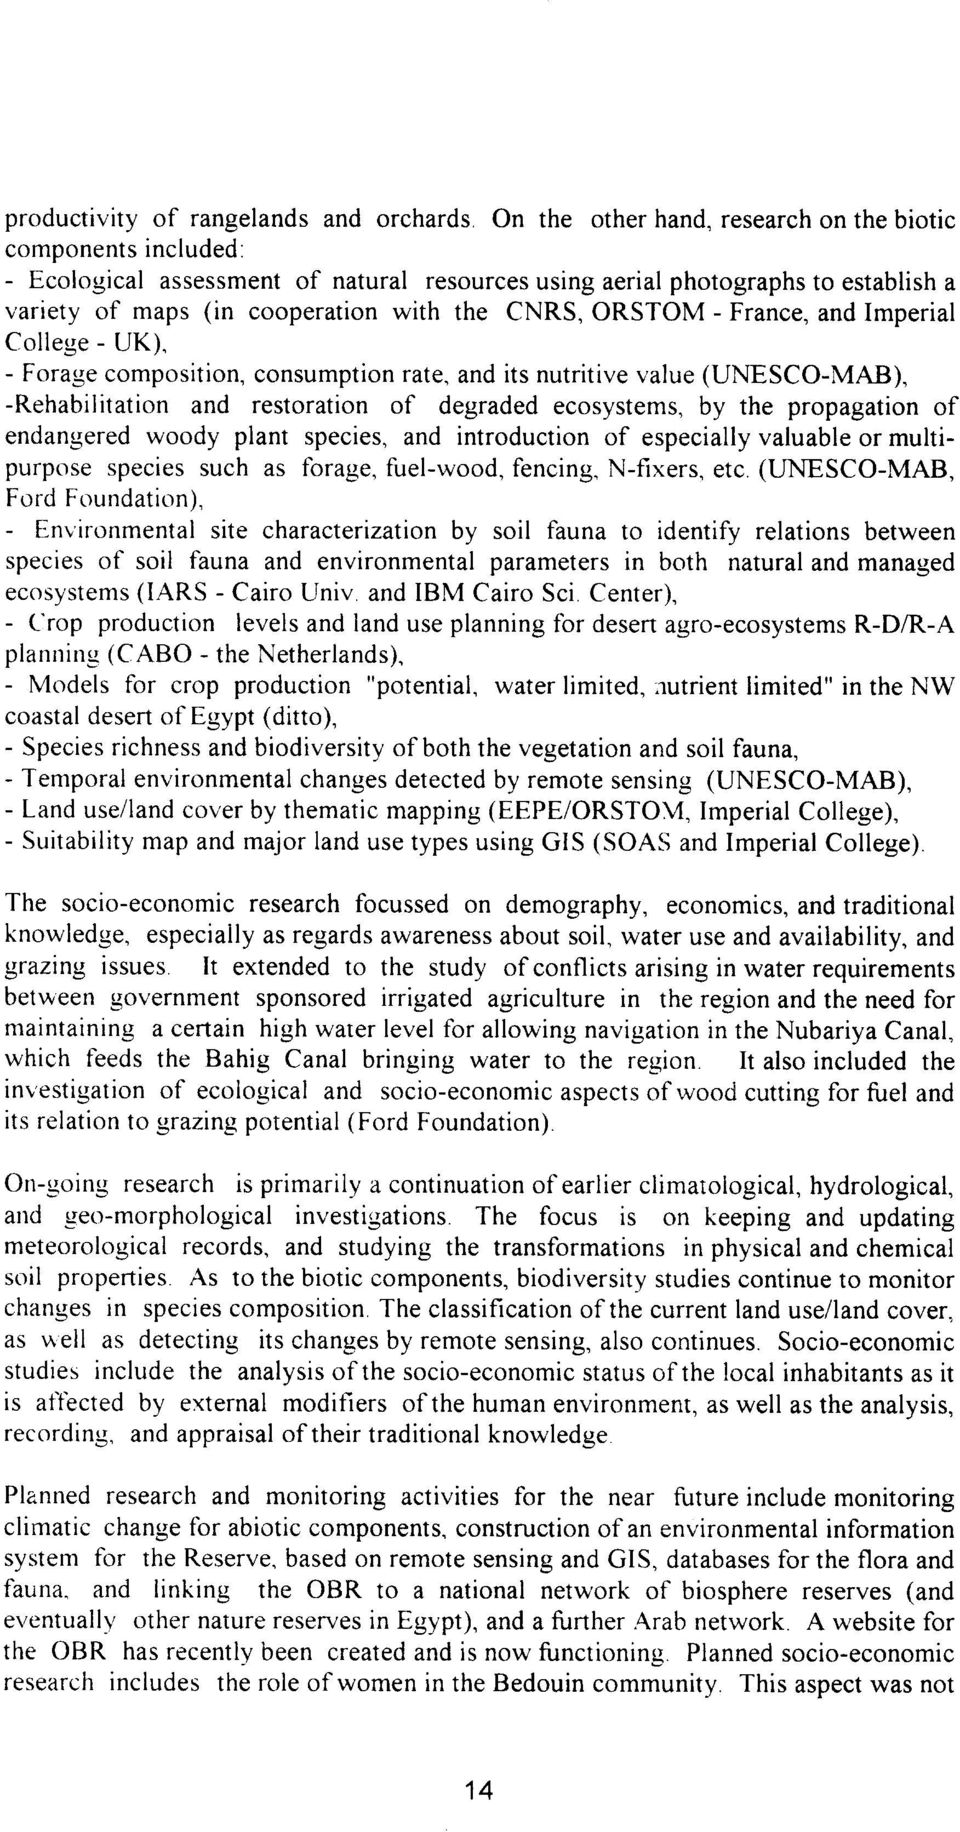 ORSTOM - France, and Imperial College - UK), - Forage composition, consumption rate, and its nutritive value (UNESCO-MAB), -Rehabilitation and restoration of degraded ecosystems, by the propagation